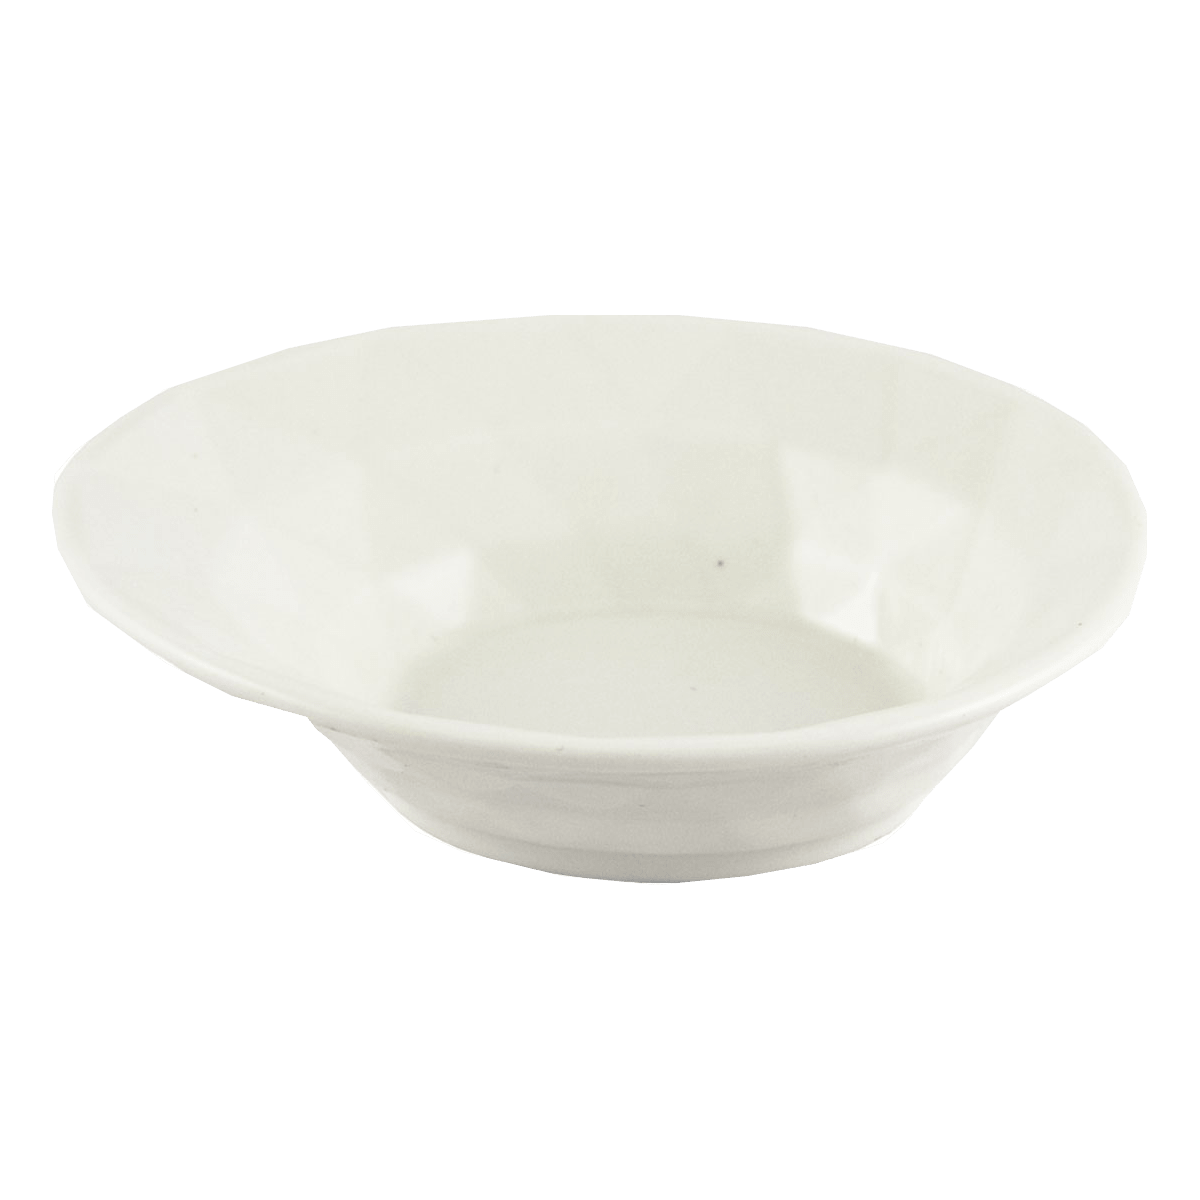 /uploads/UserFiles/Images/Products%2Fwhite-porcelain%2Fsoup-bowl%2Fsauce-dish-0058-min.png